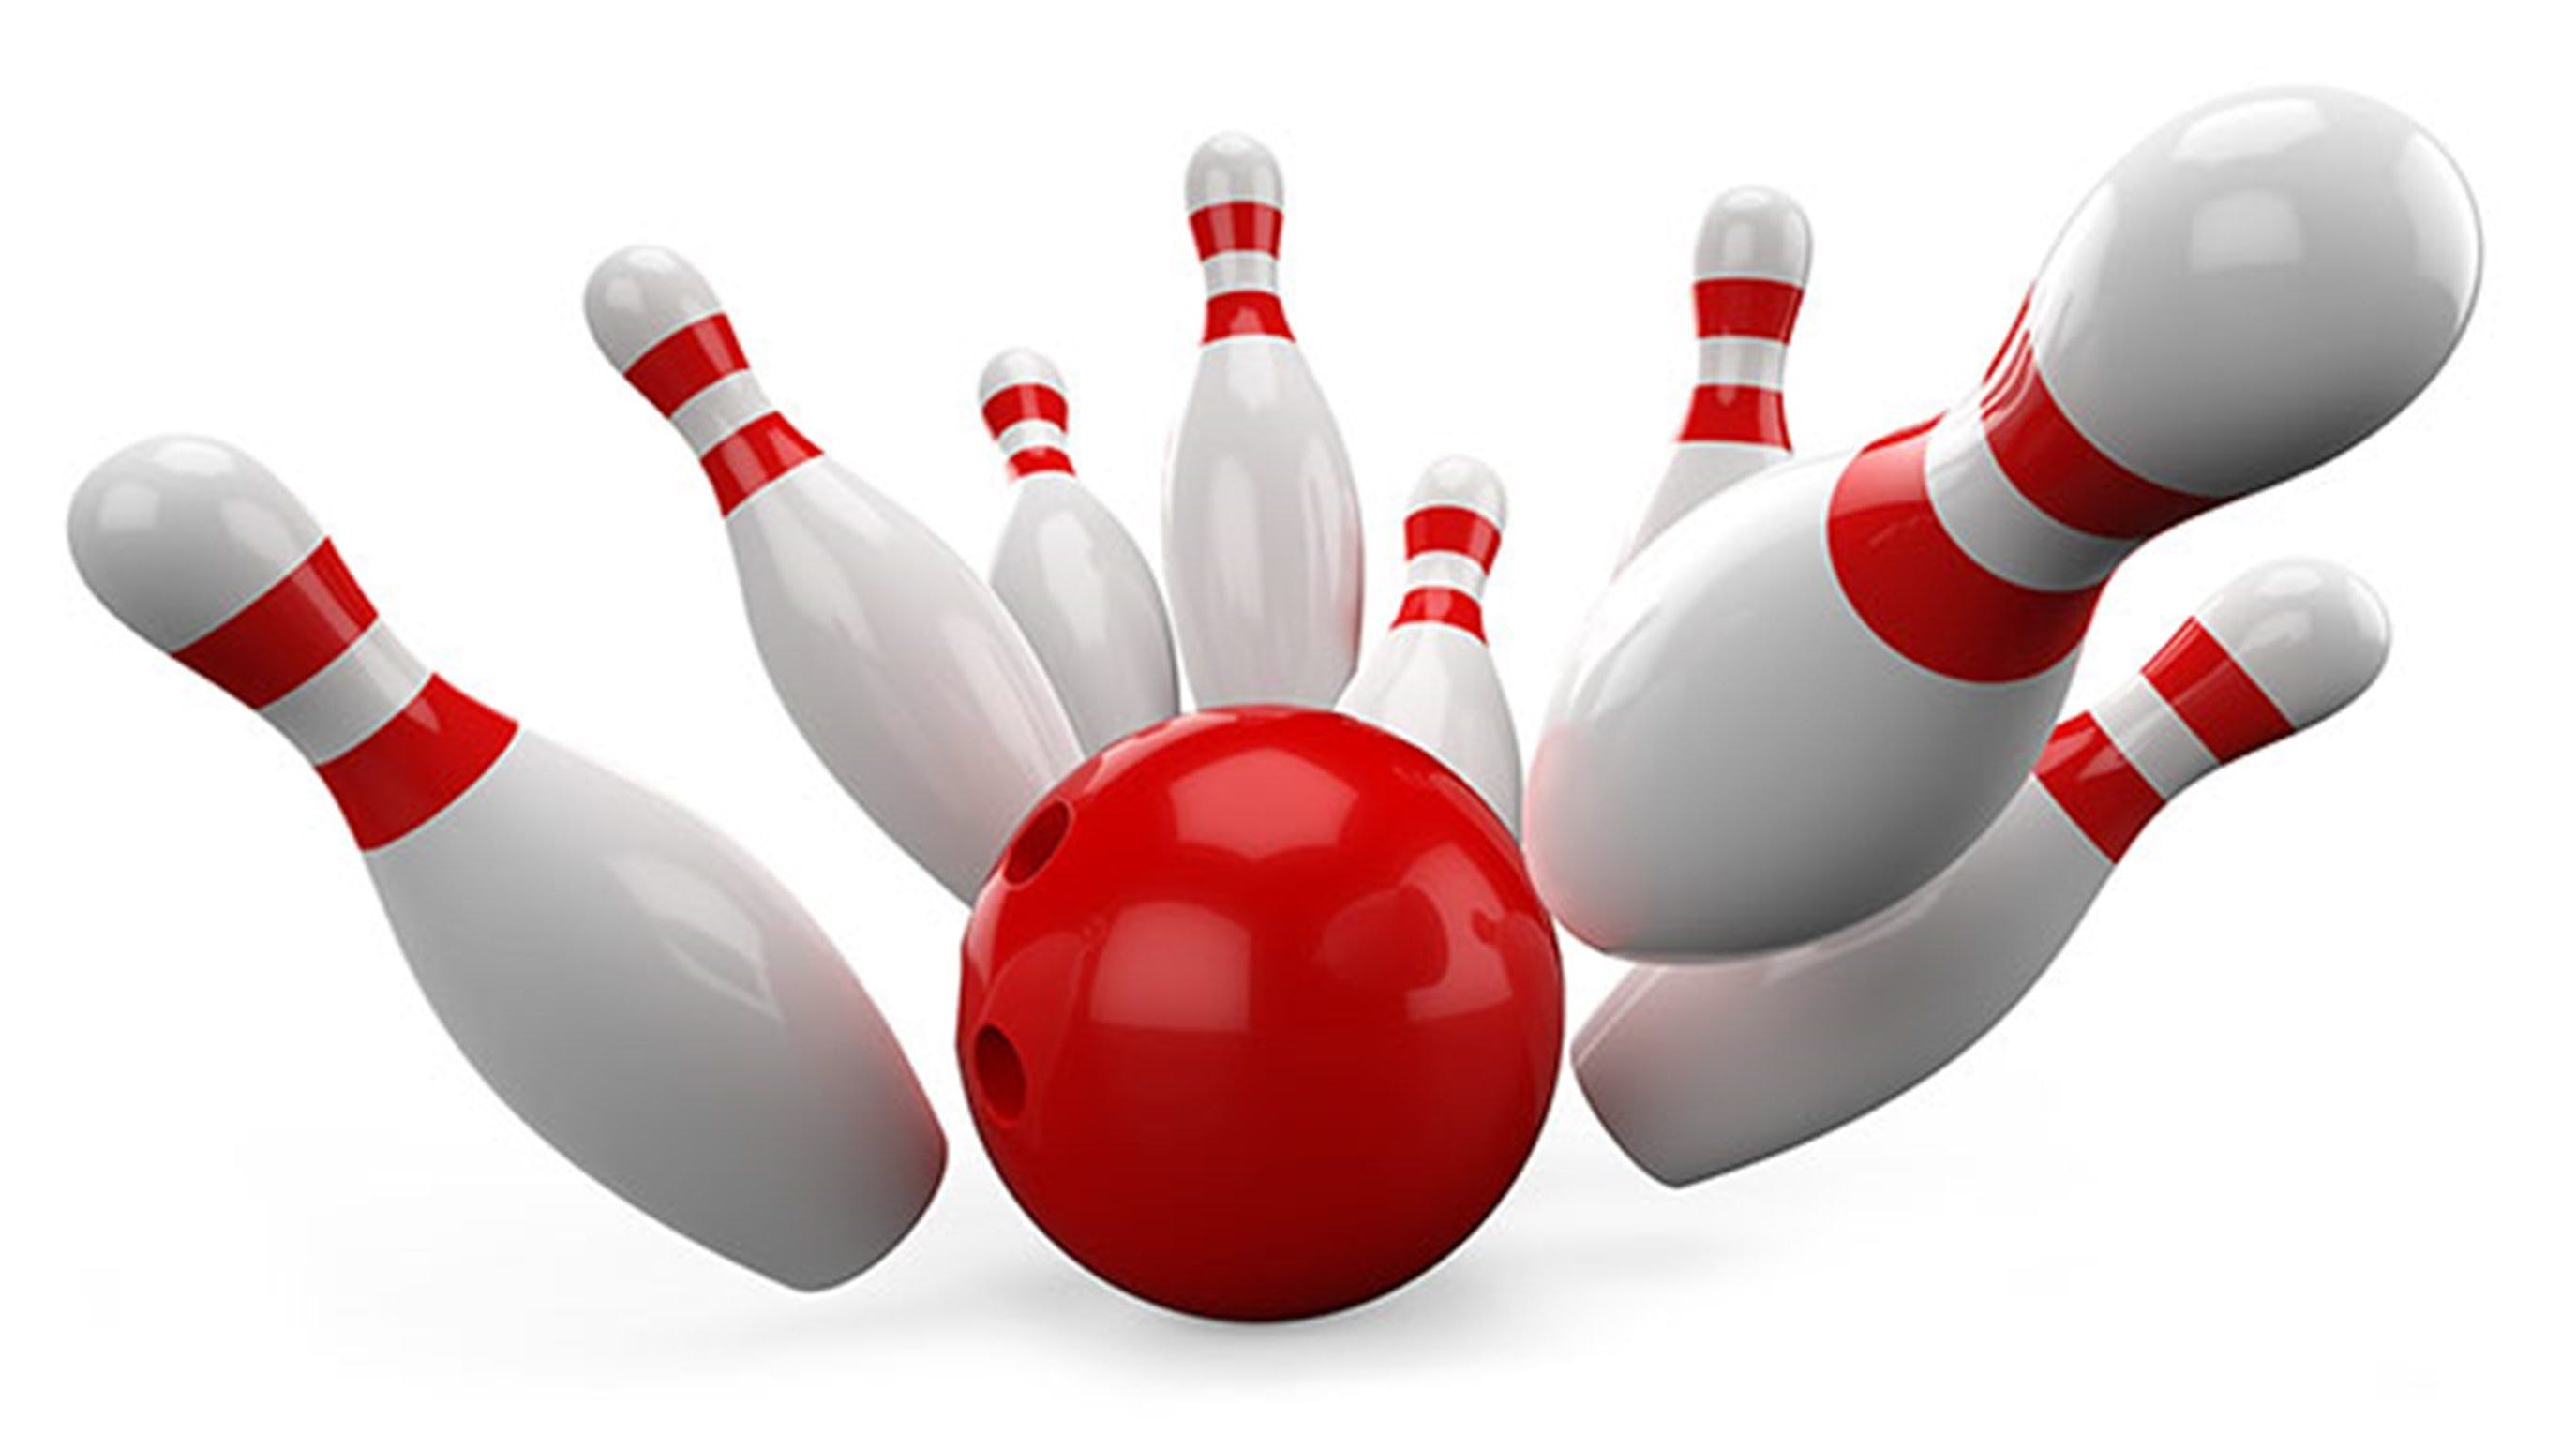 Shellharbour Tenpin Bowl - ACT Tourism